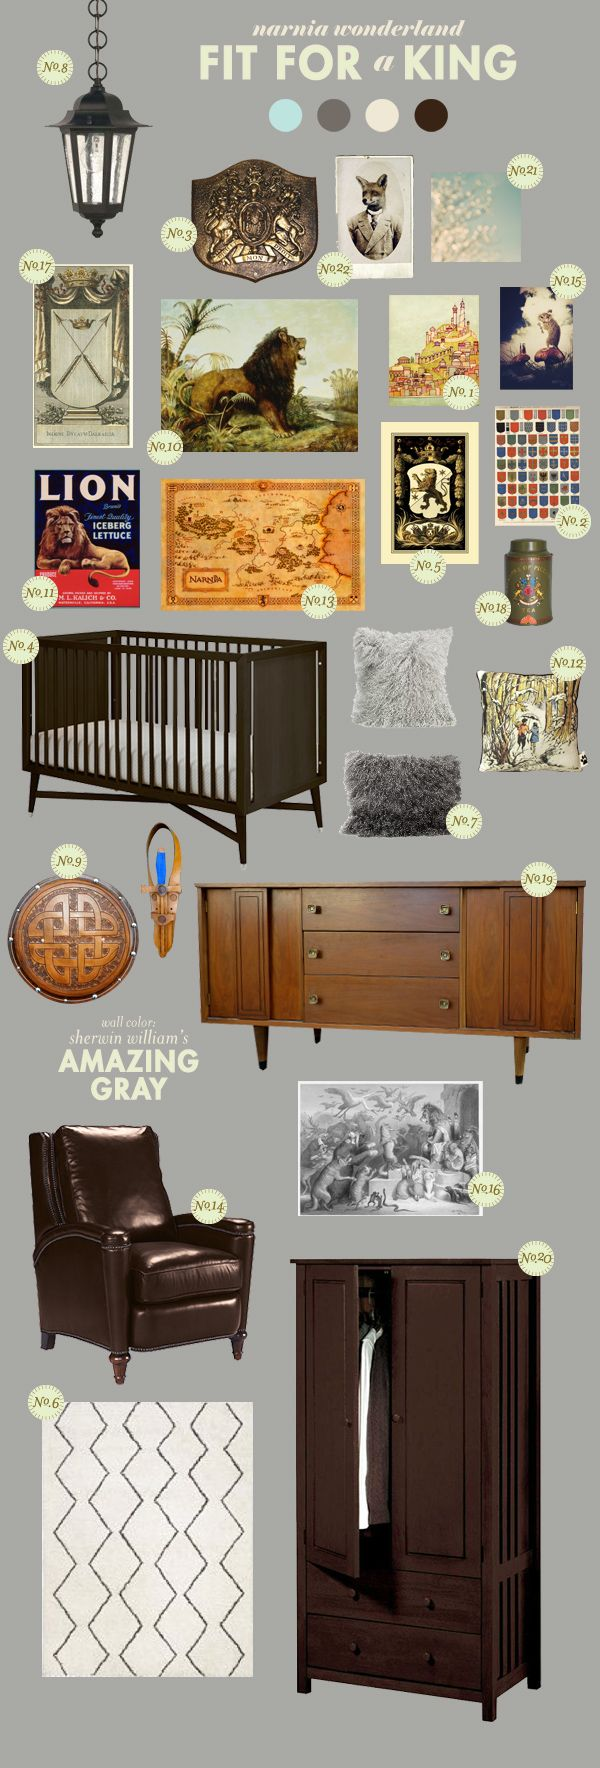 Fit for a King Nursery Inspiration Board - riffs off of the Chronicles of Narnia without being too literal. Fun!